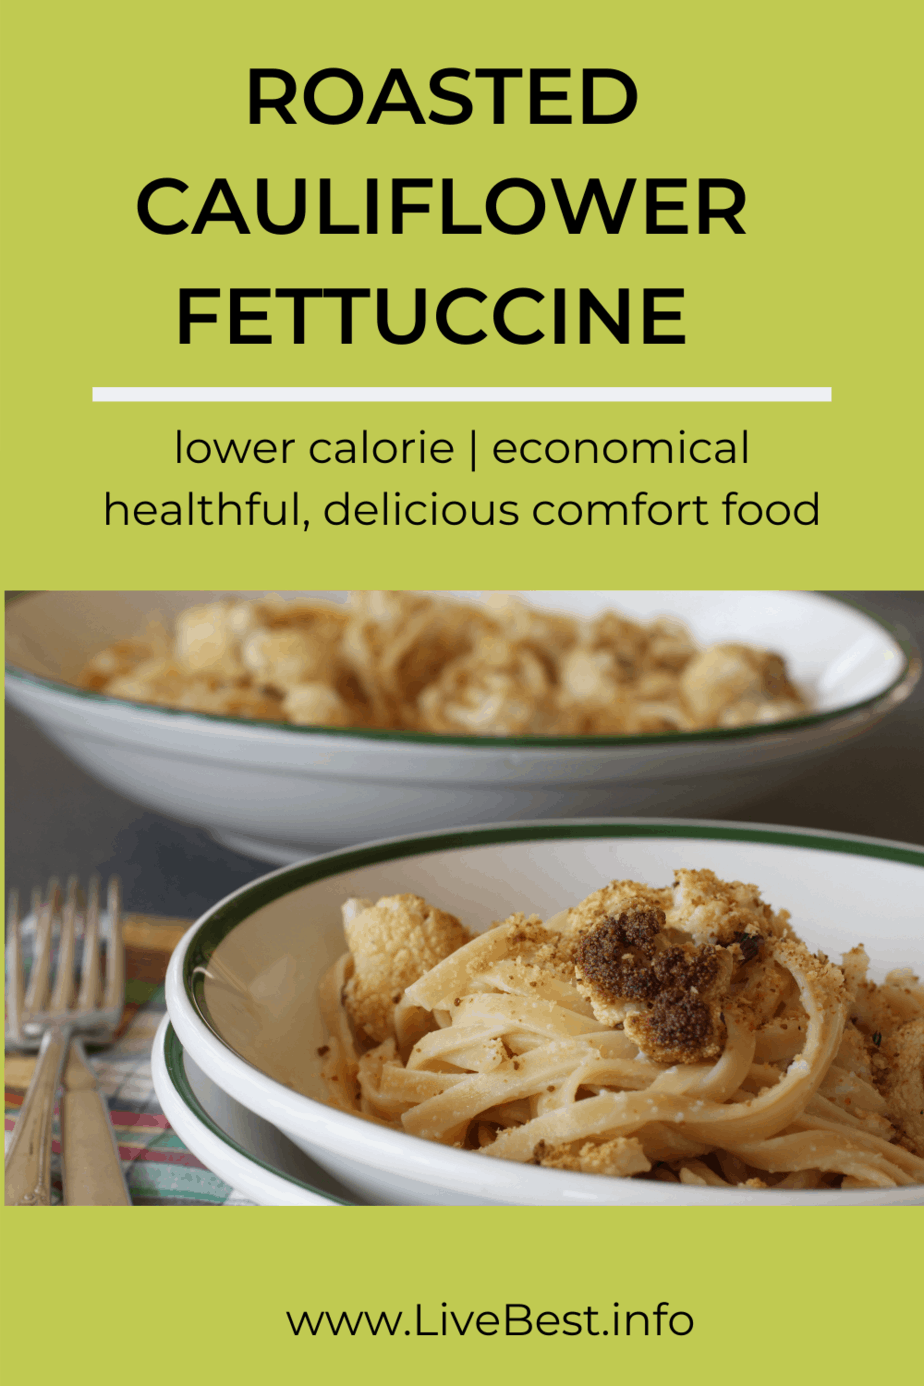 2 bowls of roasted cauliflower fettuccine